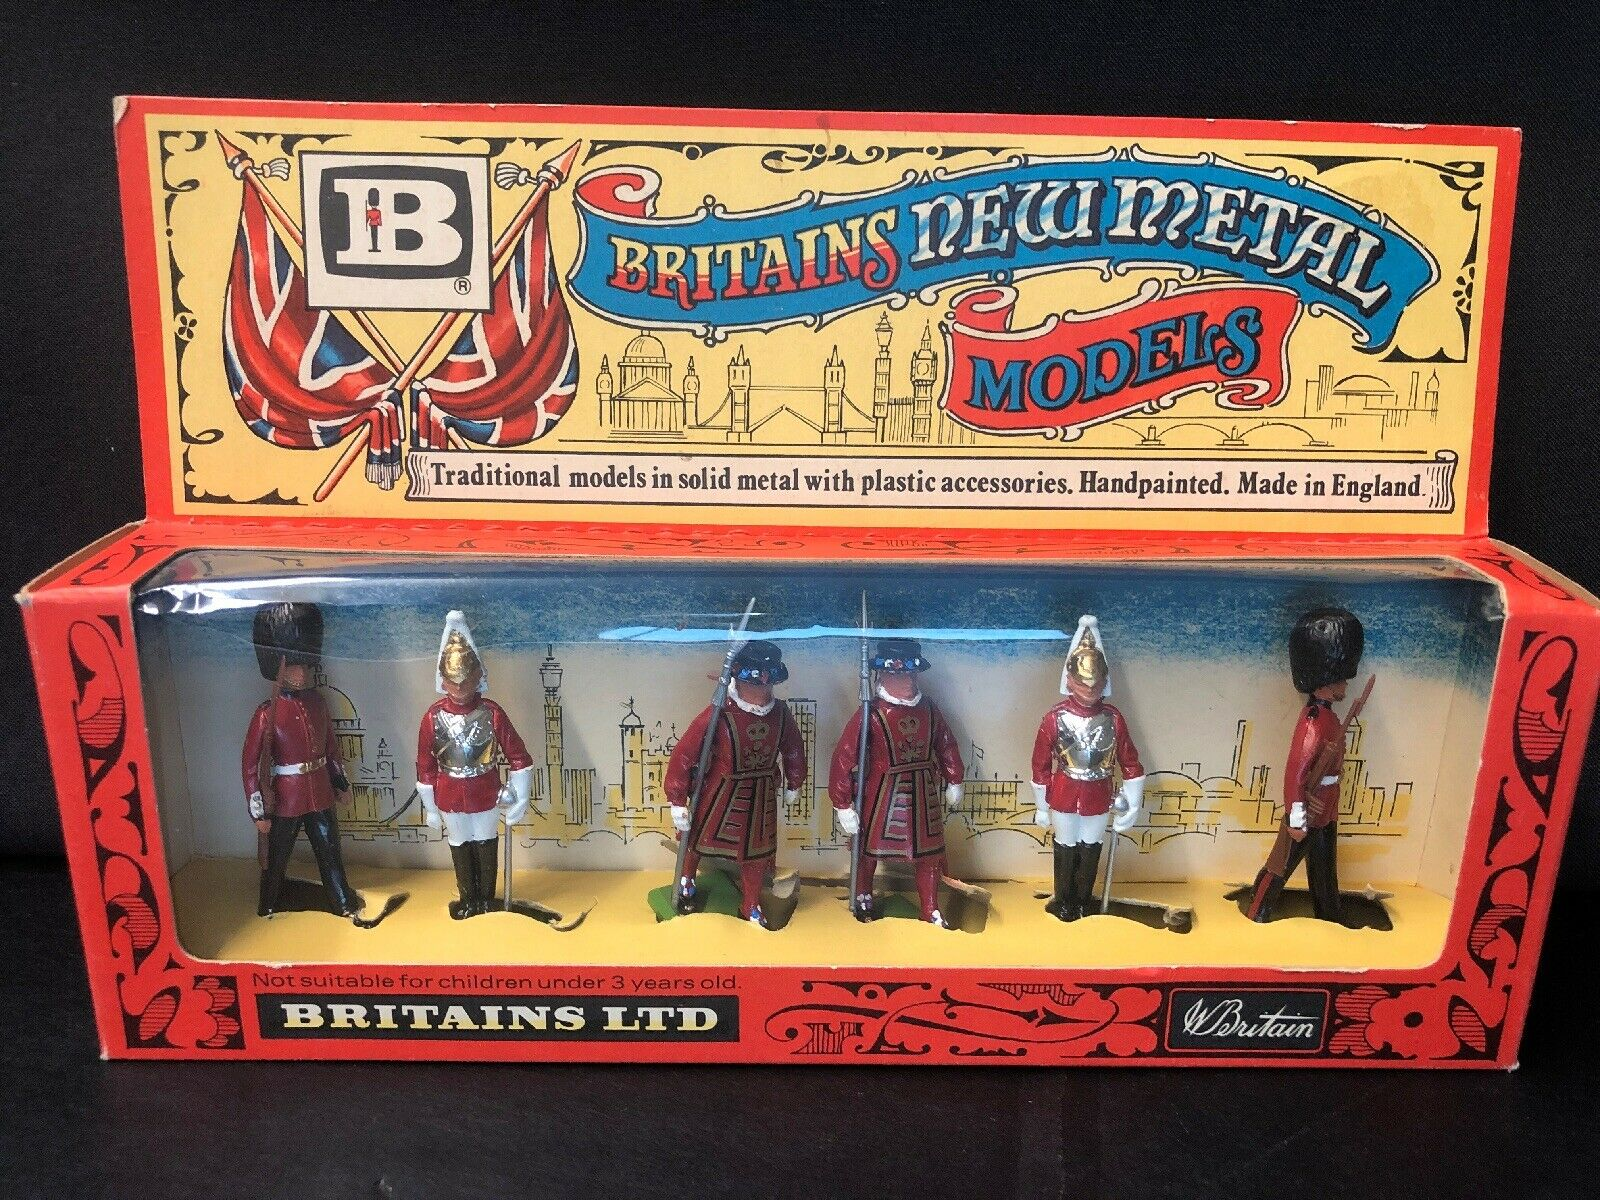 BRITAINS 7225 NEW METAL CERMONIAL MODELS TOY SOLDIERS 1976 54mm scale